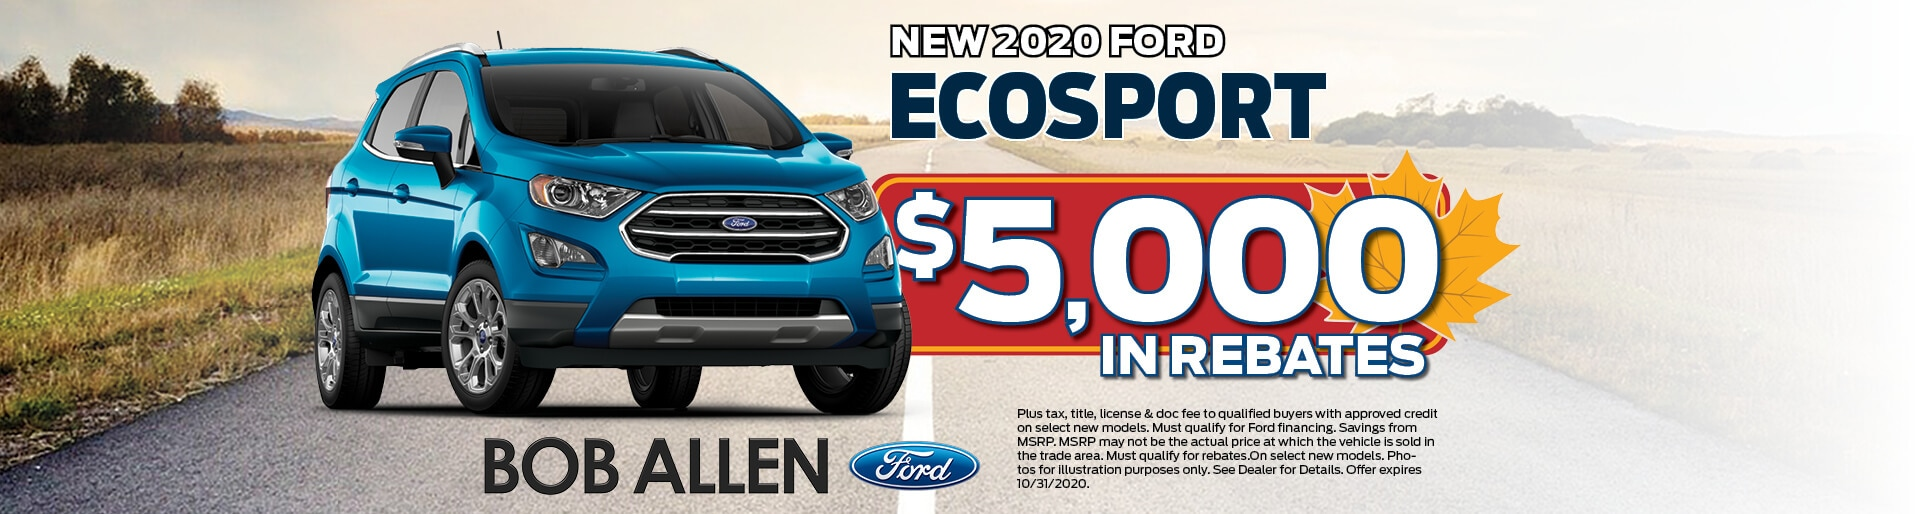 2020 Ford EcoSport | $5,000 in rebates | Overland Park, KS